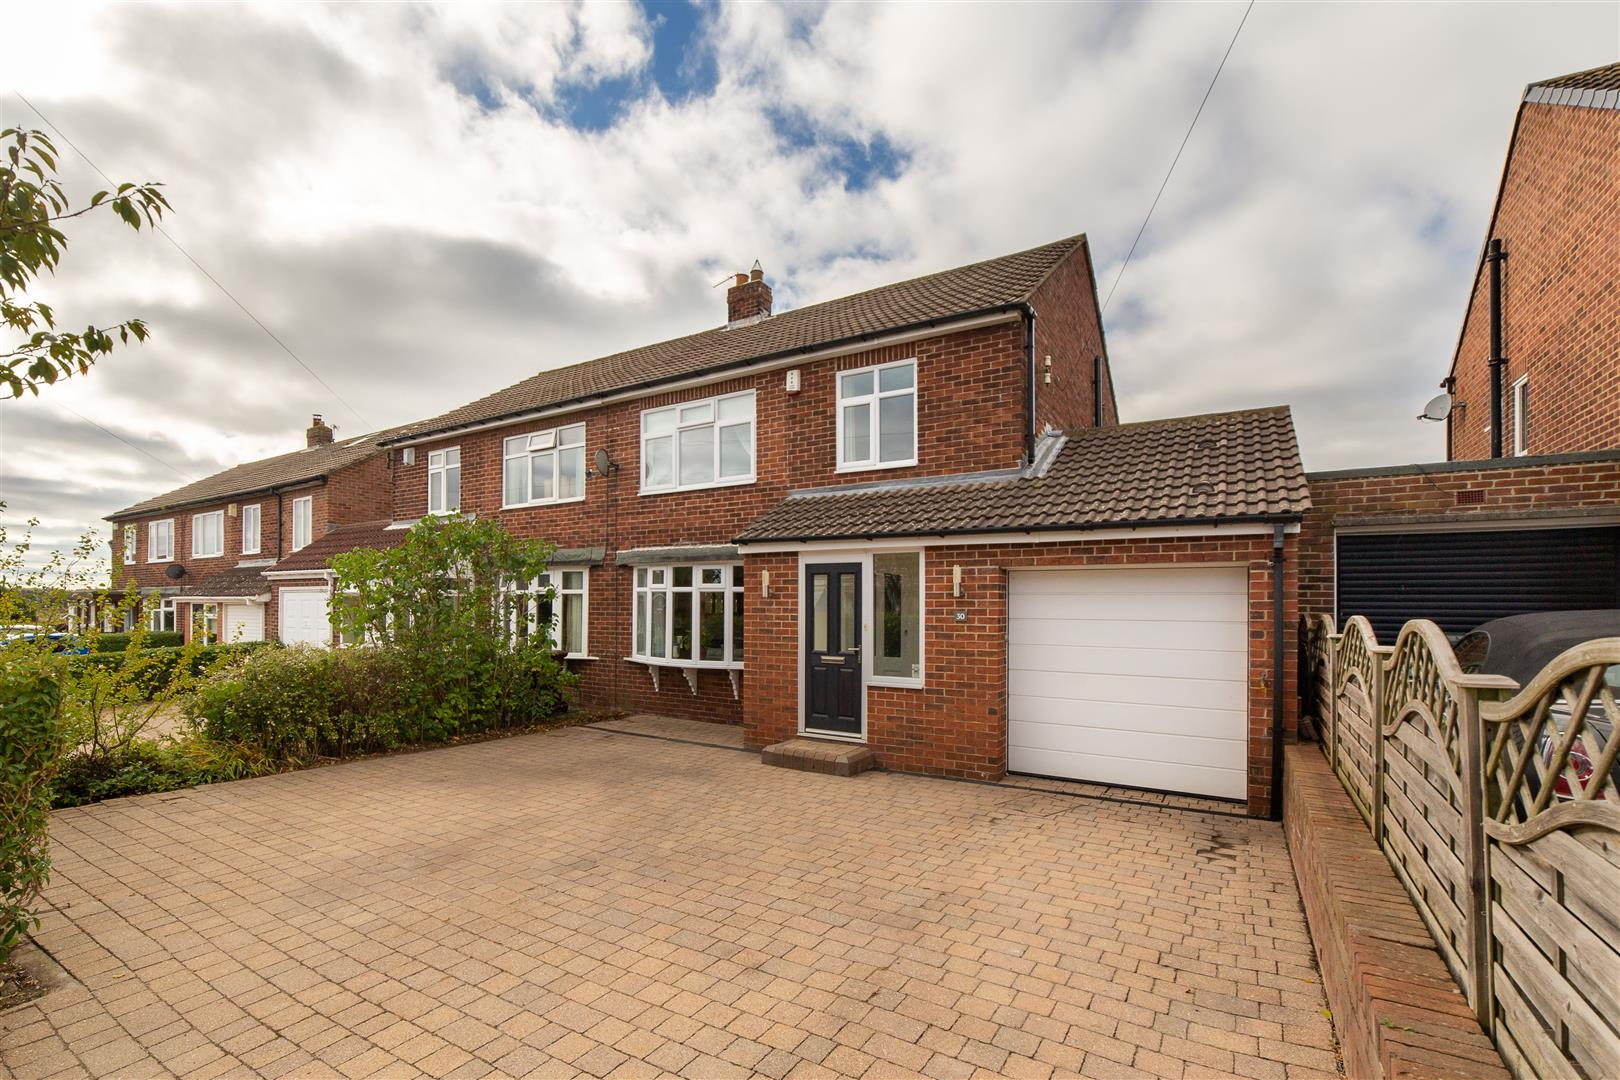 3 bed semi-detached house for sale in Greenfield Road, Newcastle Upon Tyne, NE3